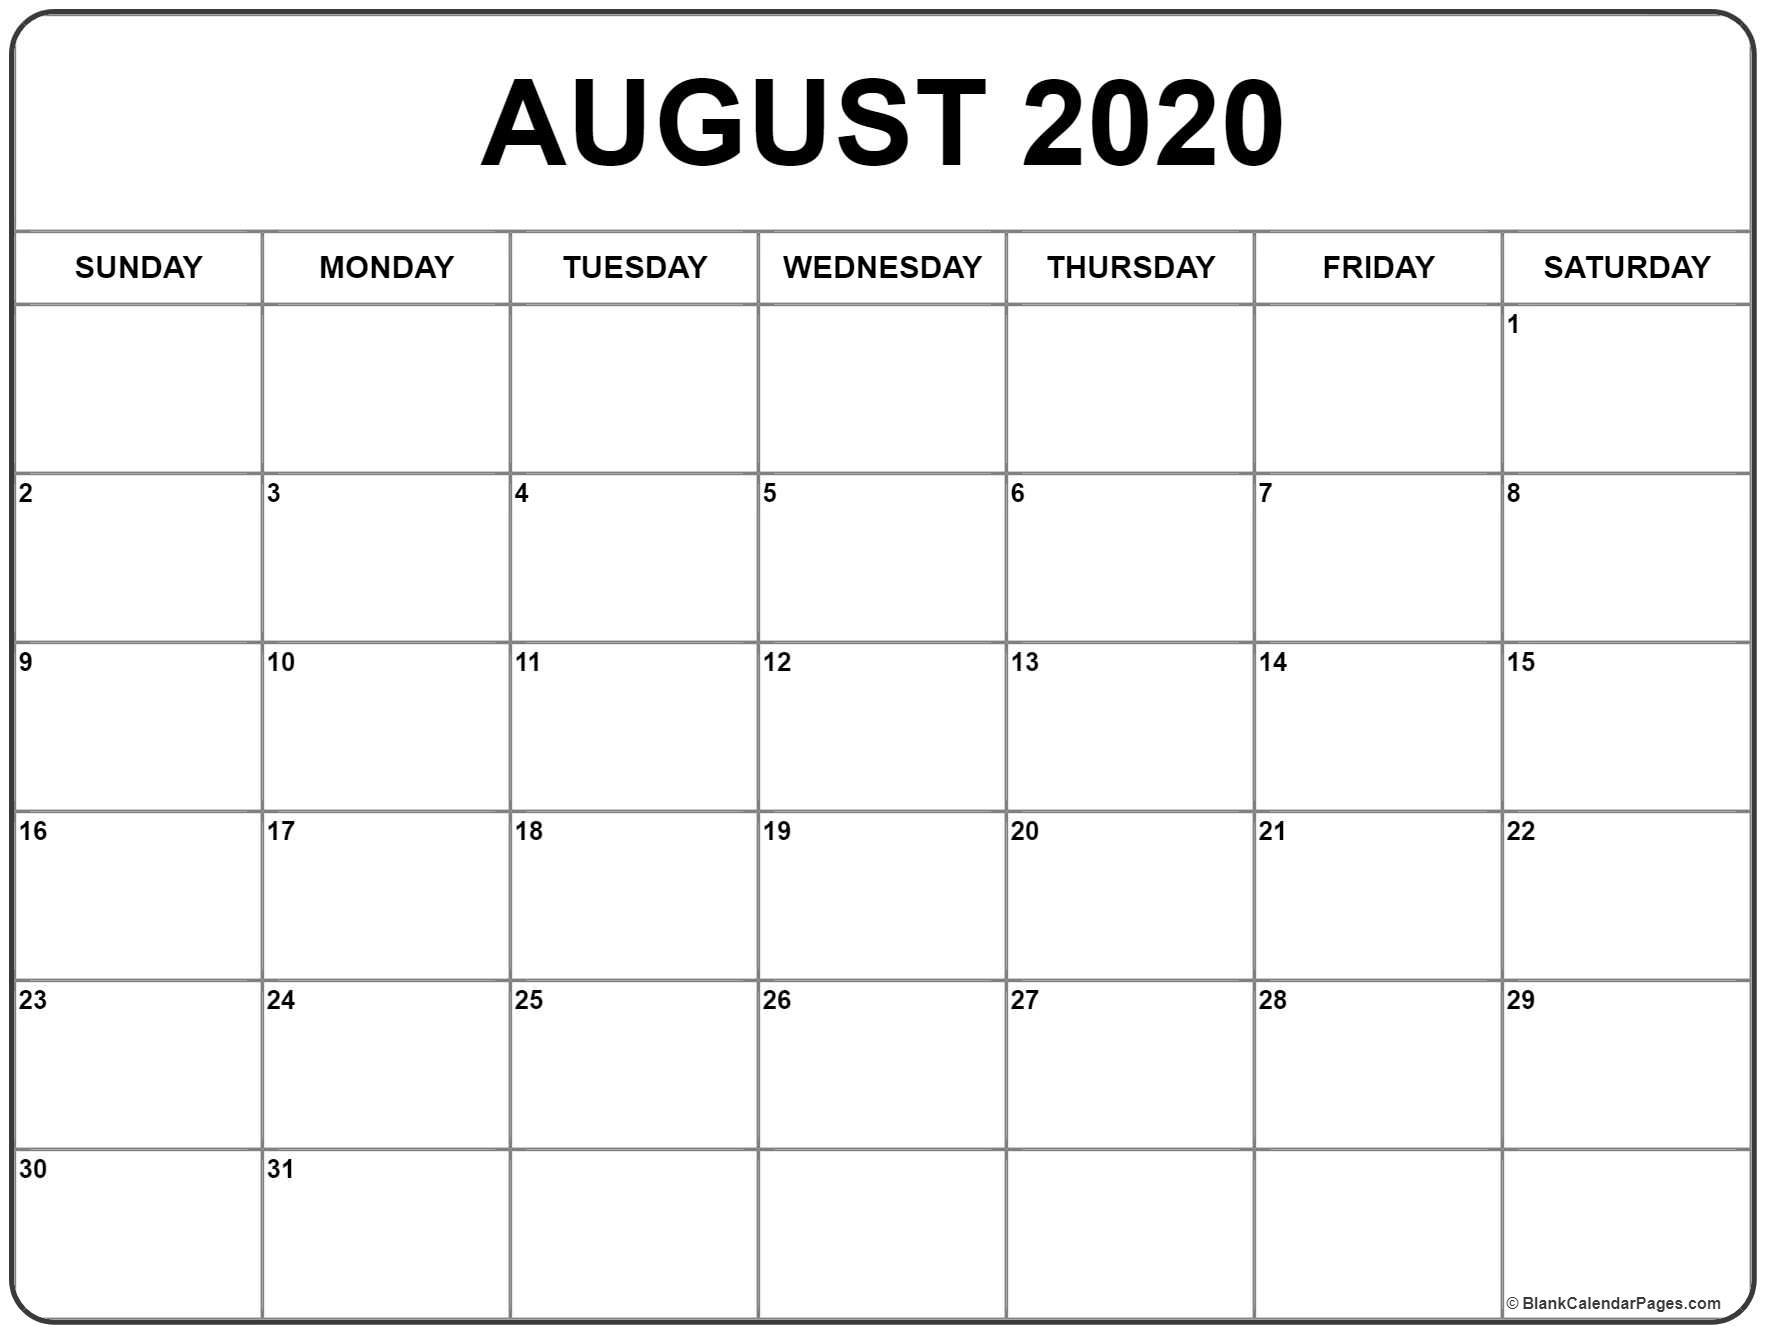 August 2020 Calendar | Free Printable Monthly Calendars_Blank Calendar For August 2020